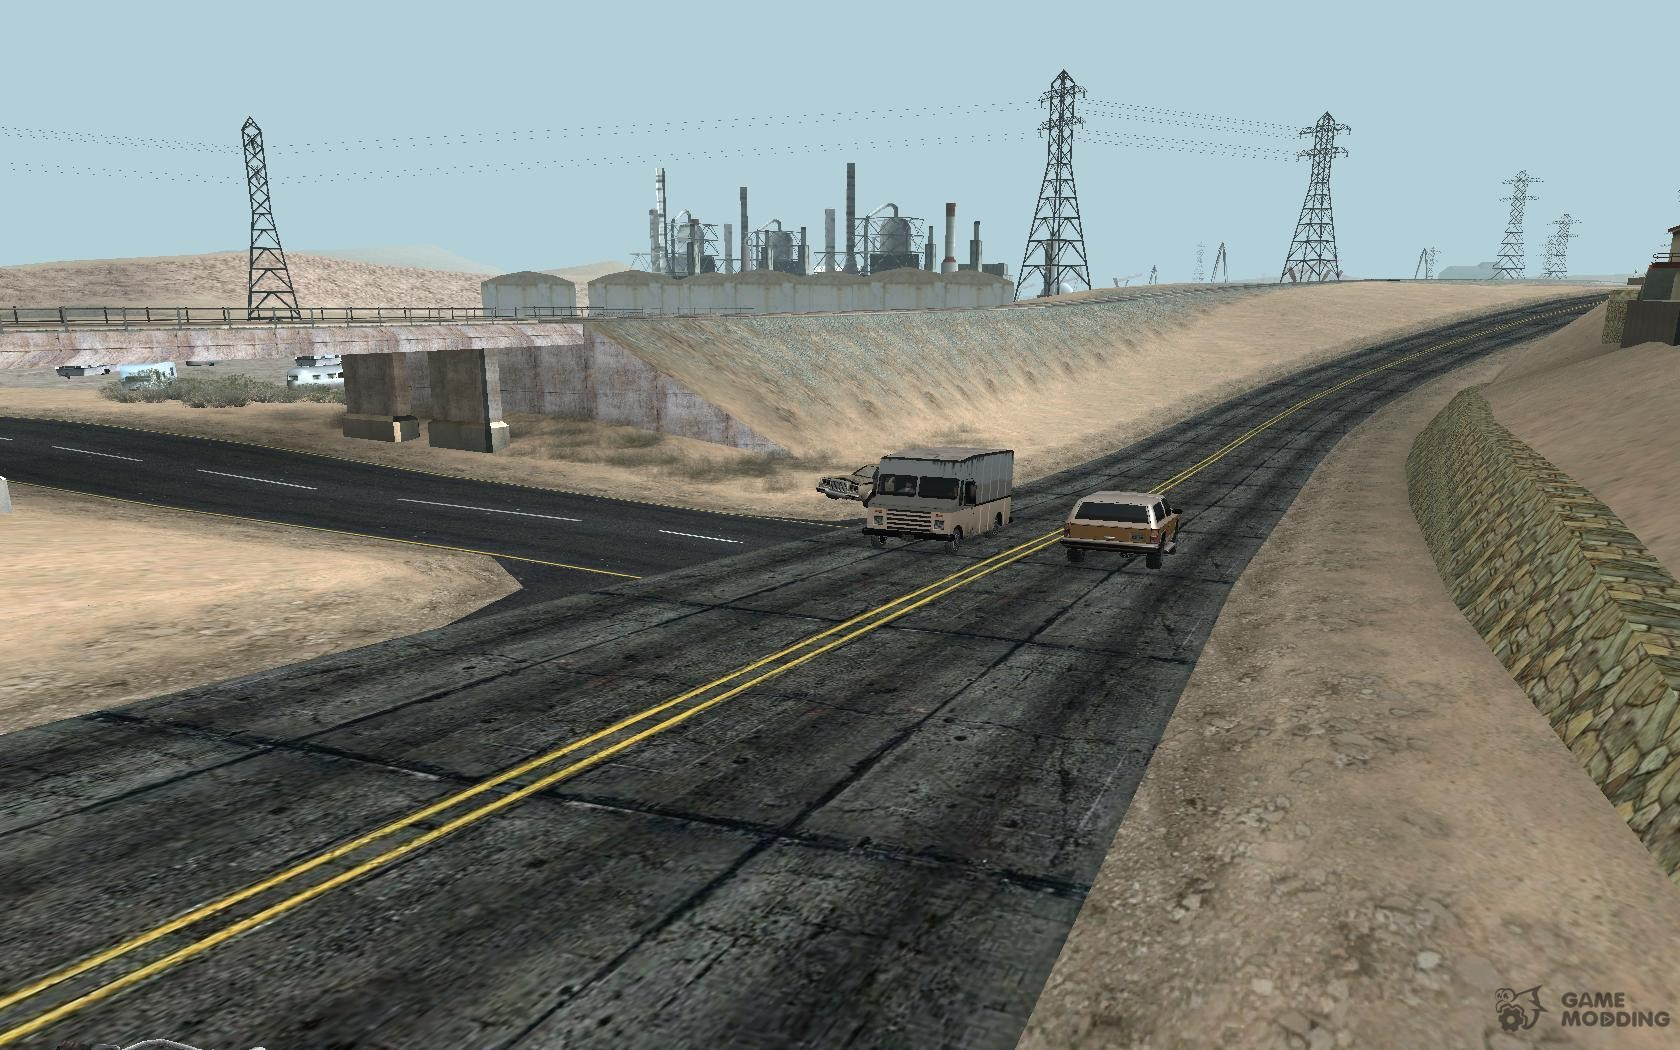 gta sa helicopters with 47011 Modern Day Las Venturas Road Texture on 19102 New Roads San Fierro further 20527 Hd Voda additionally 33021 Mappack V13 By Naka moreover 82925 Remaster Map Full Version besides 65788 Drift.